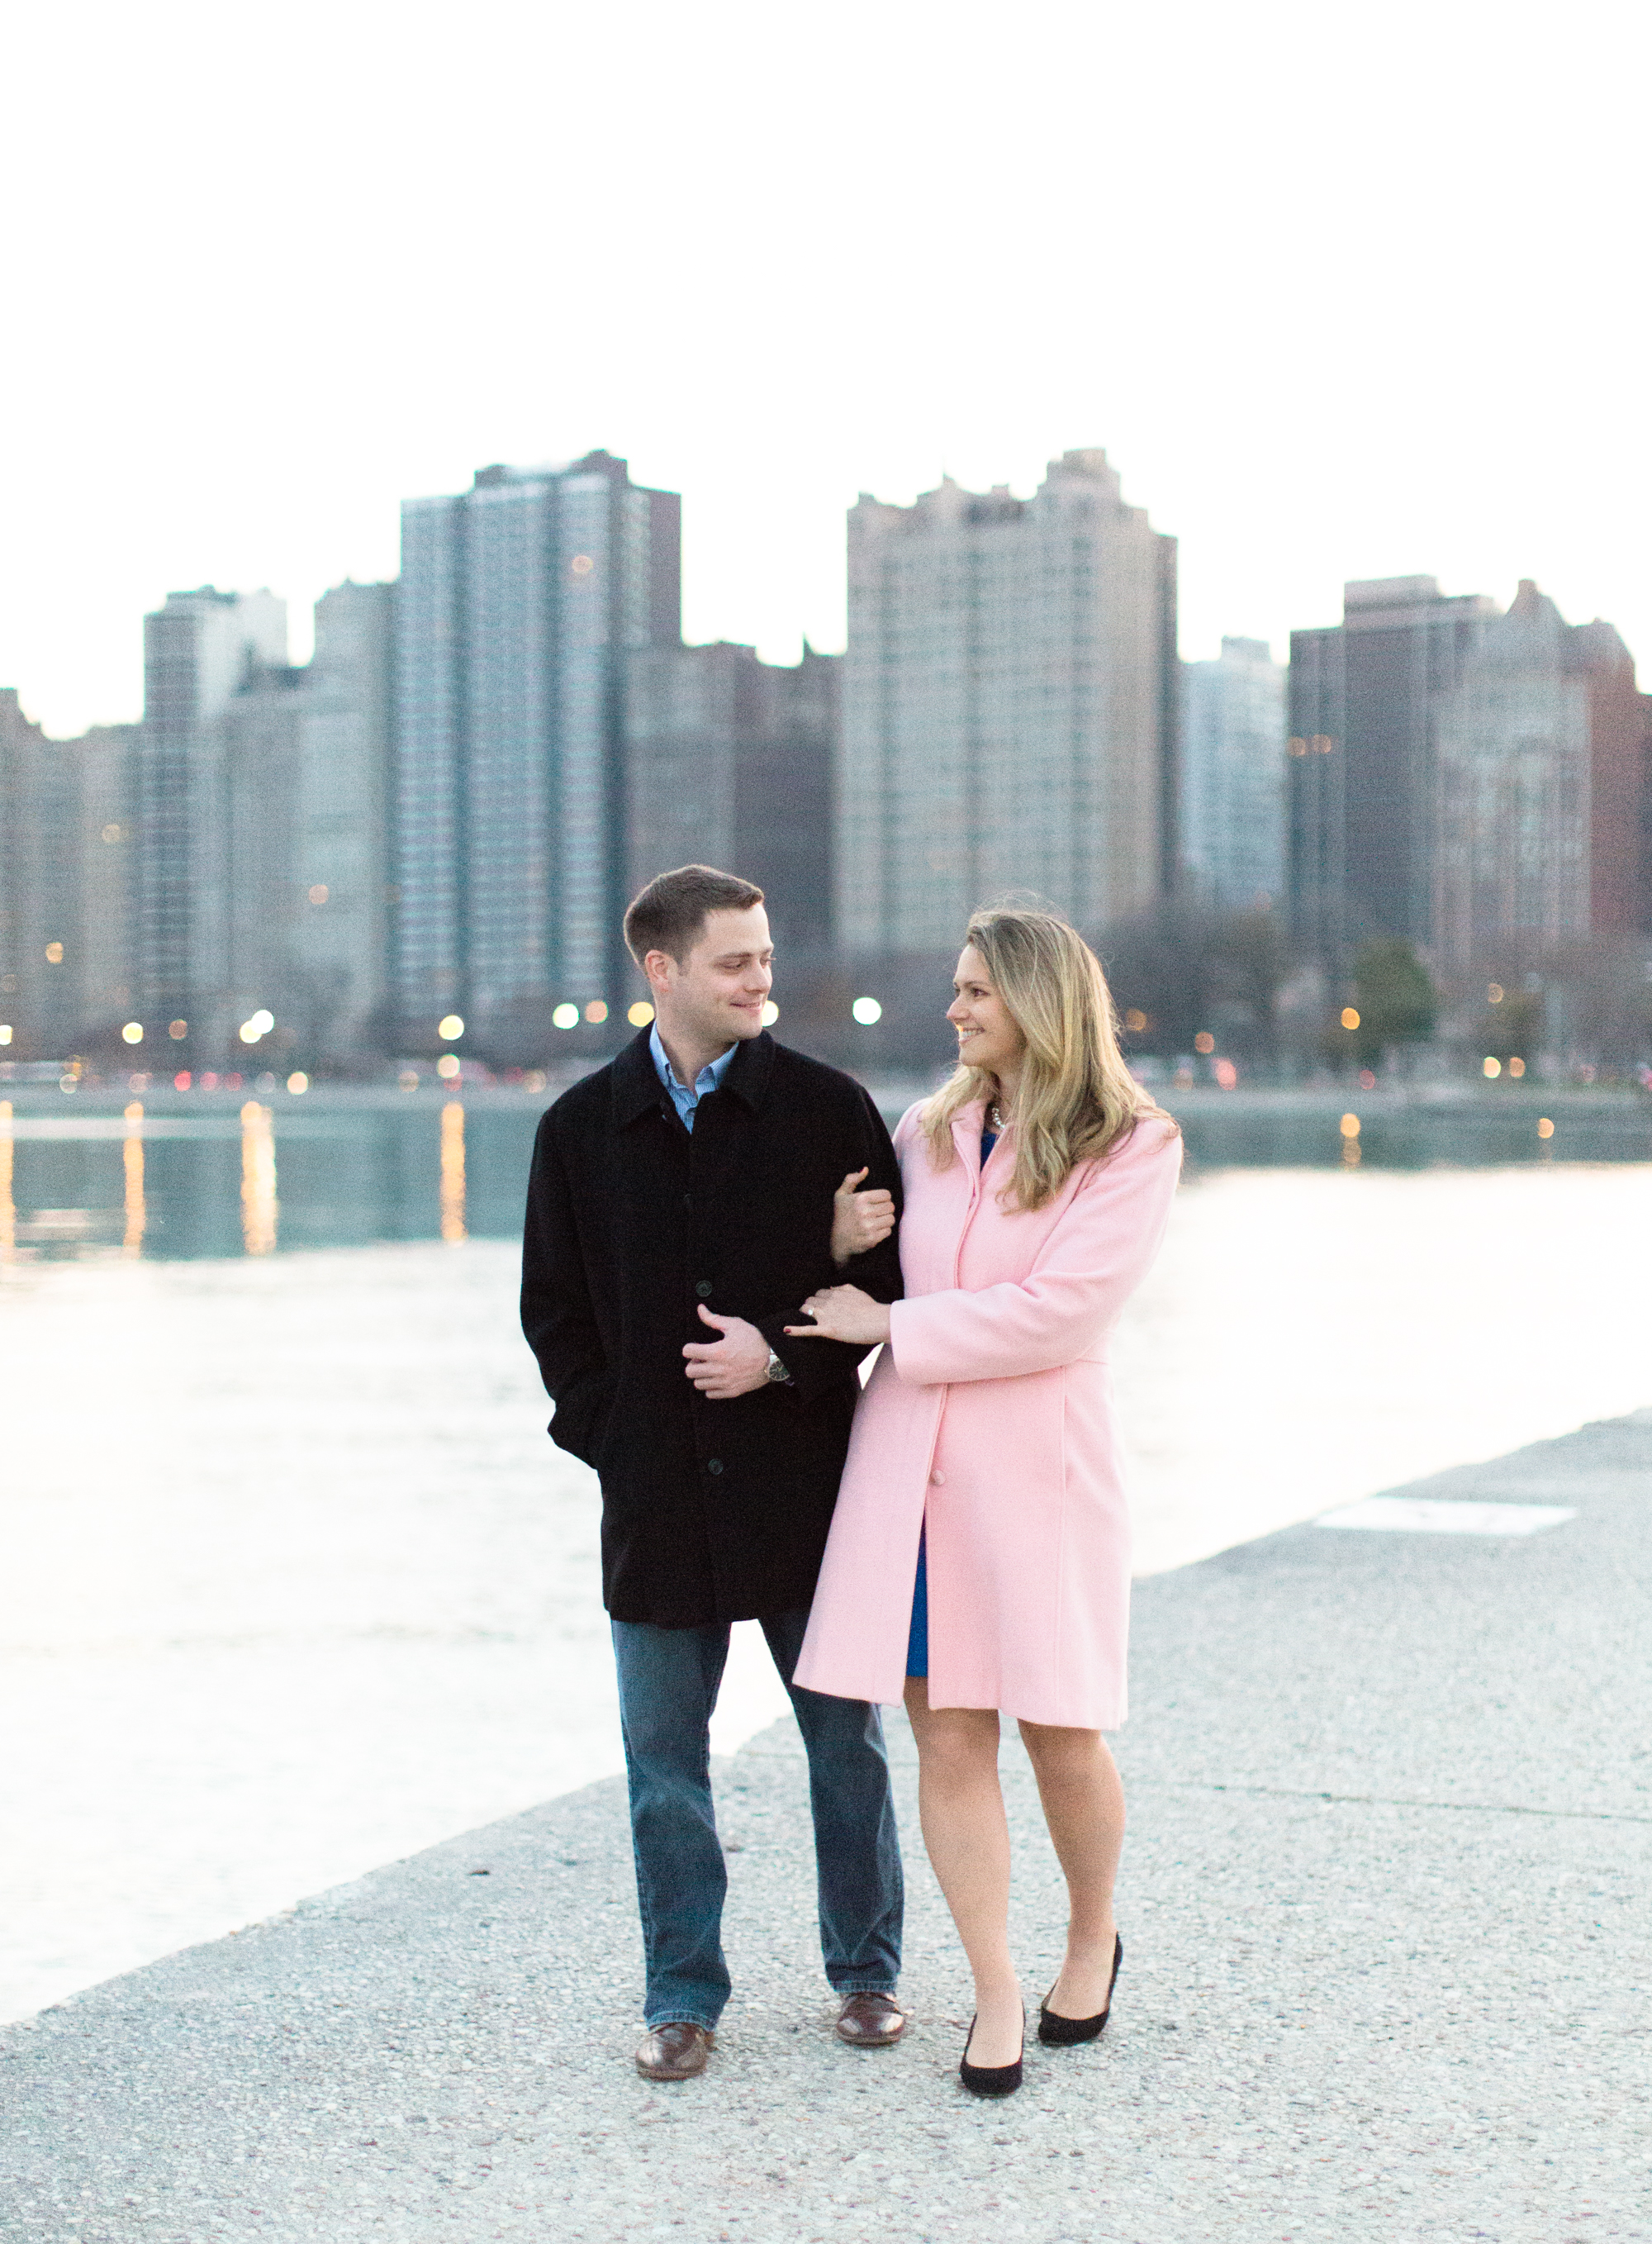 Bonphotage Chicago Sunset Engagement Photography